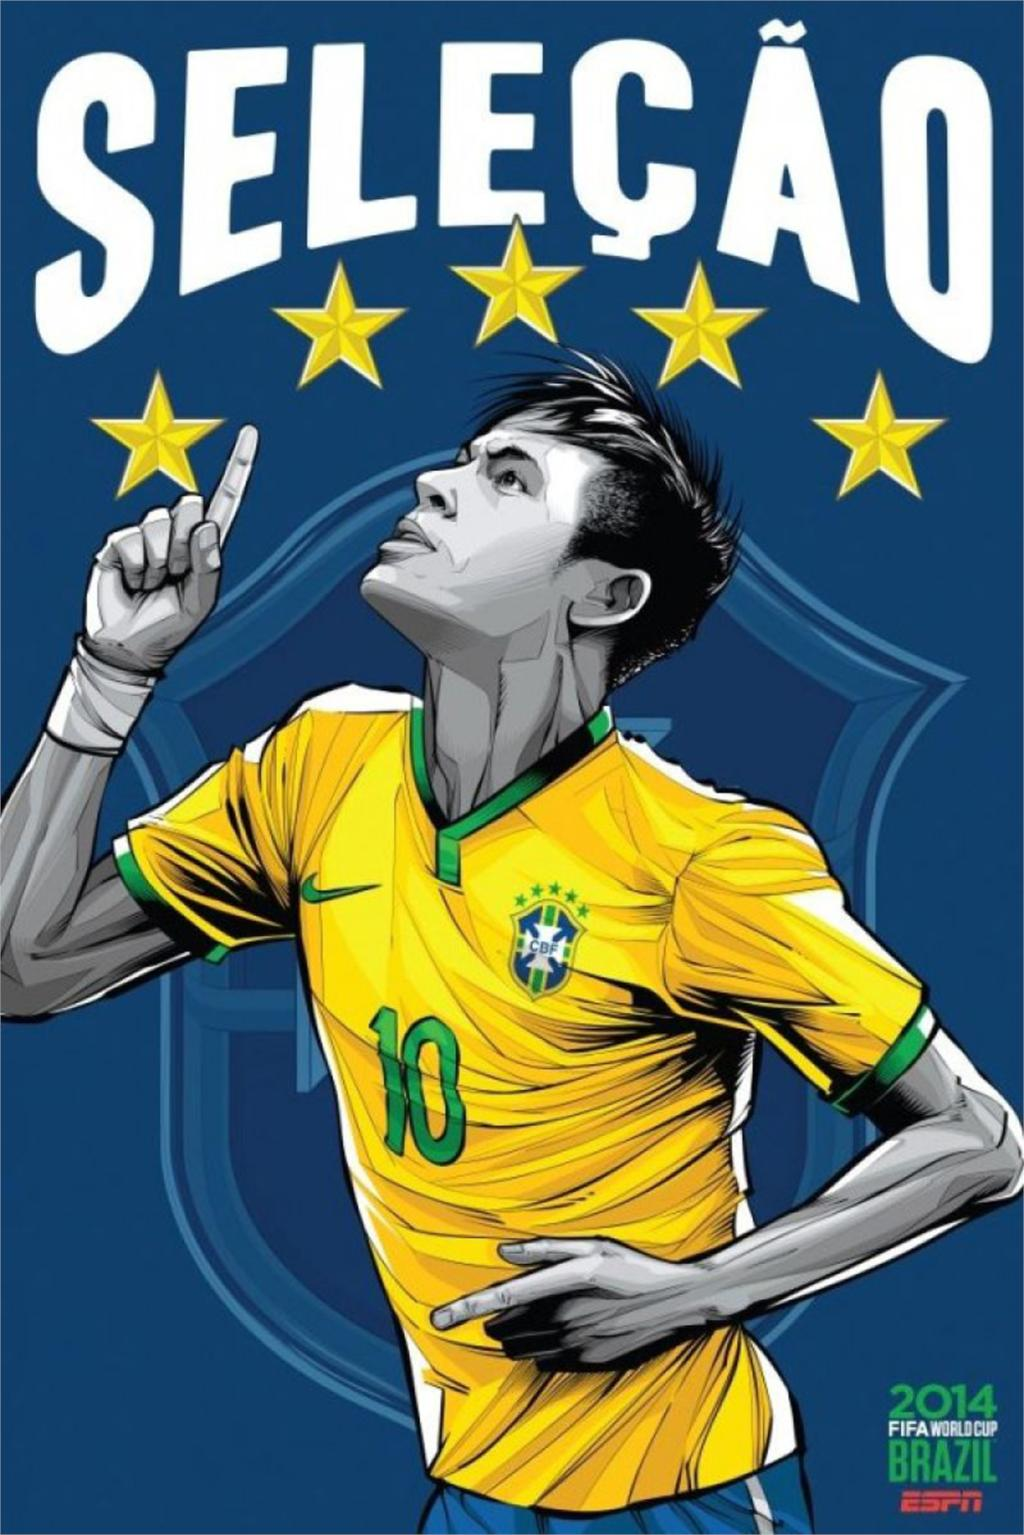 ESPN 32 World Cup Poster Brazil Soccer Football Stars Teams Art Silk Print For Room Deco hot Home Collection (13)(China (Mainland))